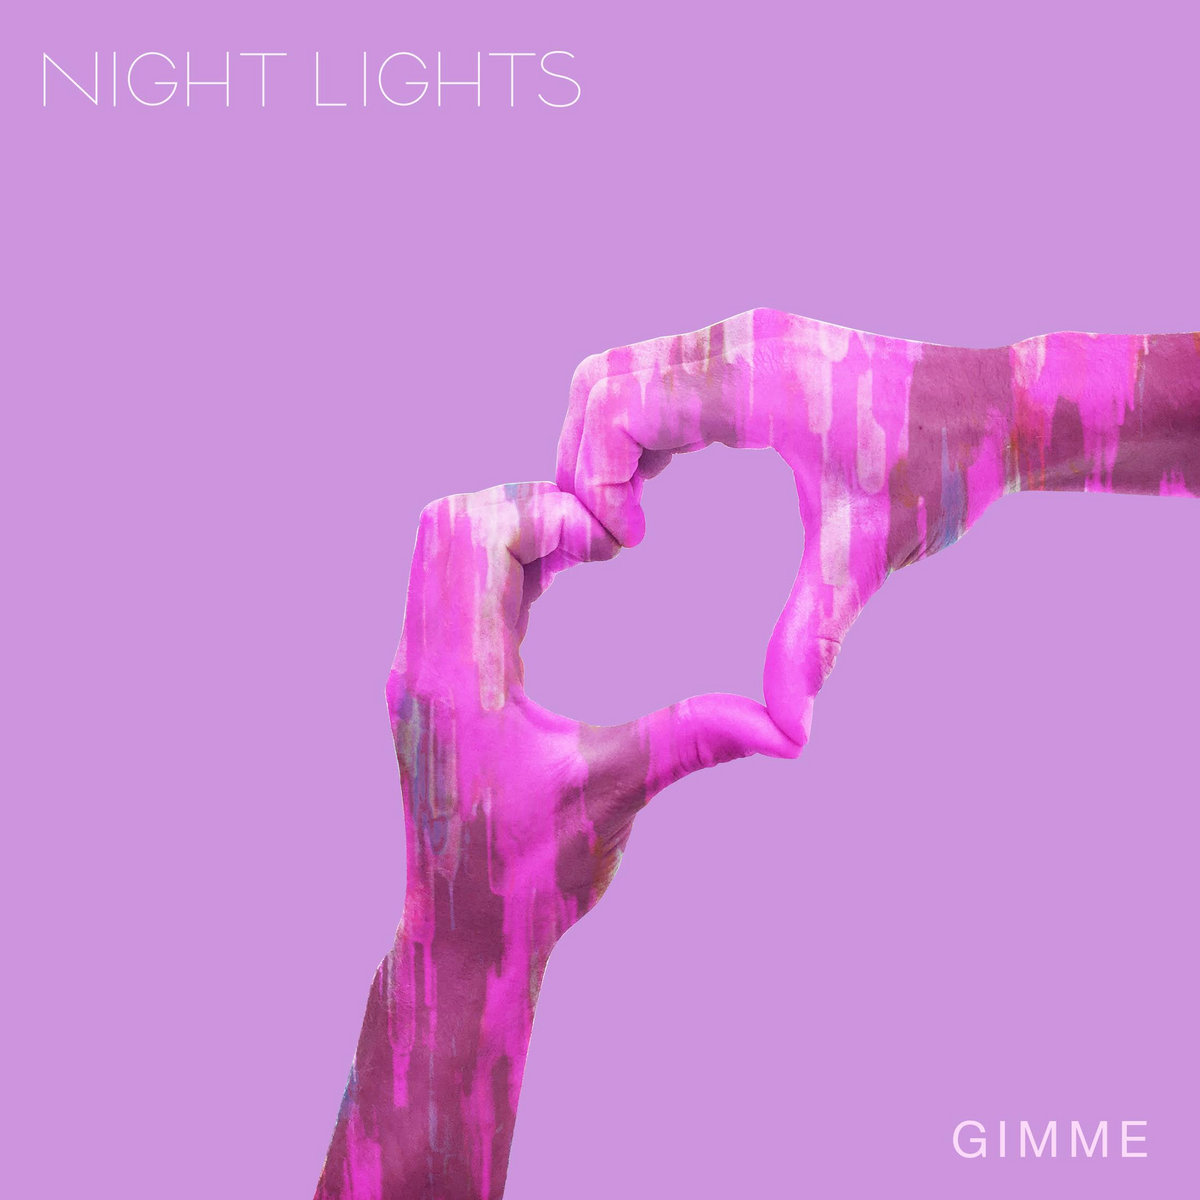 Night lights take my hand lyrics - Gimme May 2016 Childish Mar 2016 Take My Hand